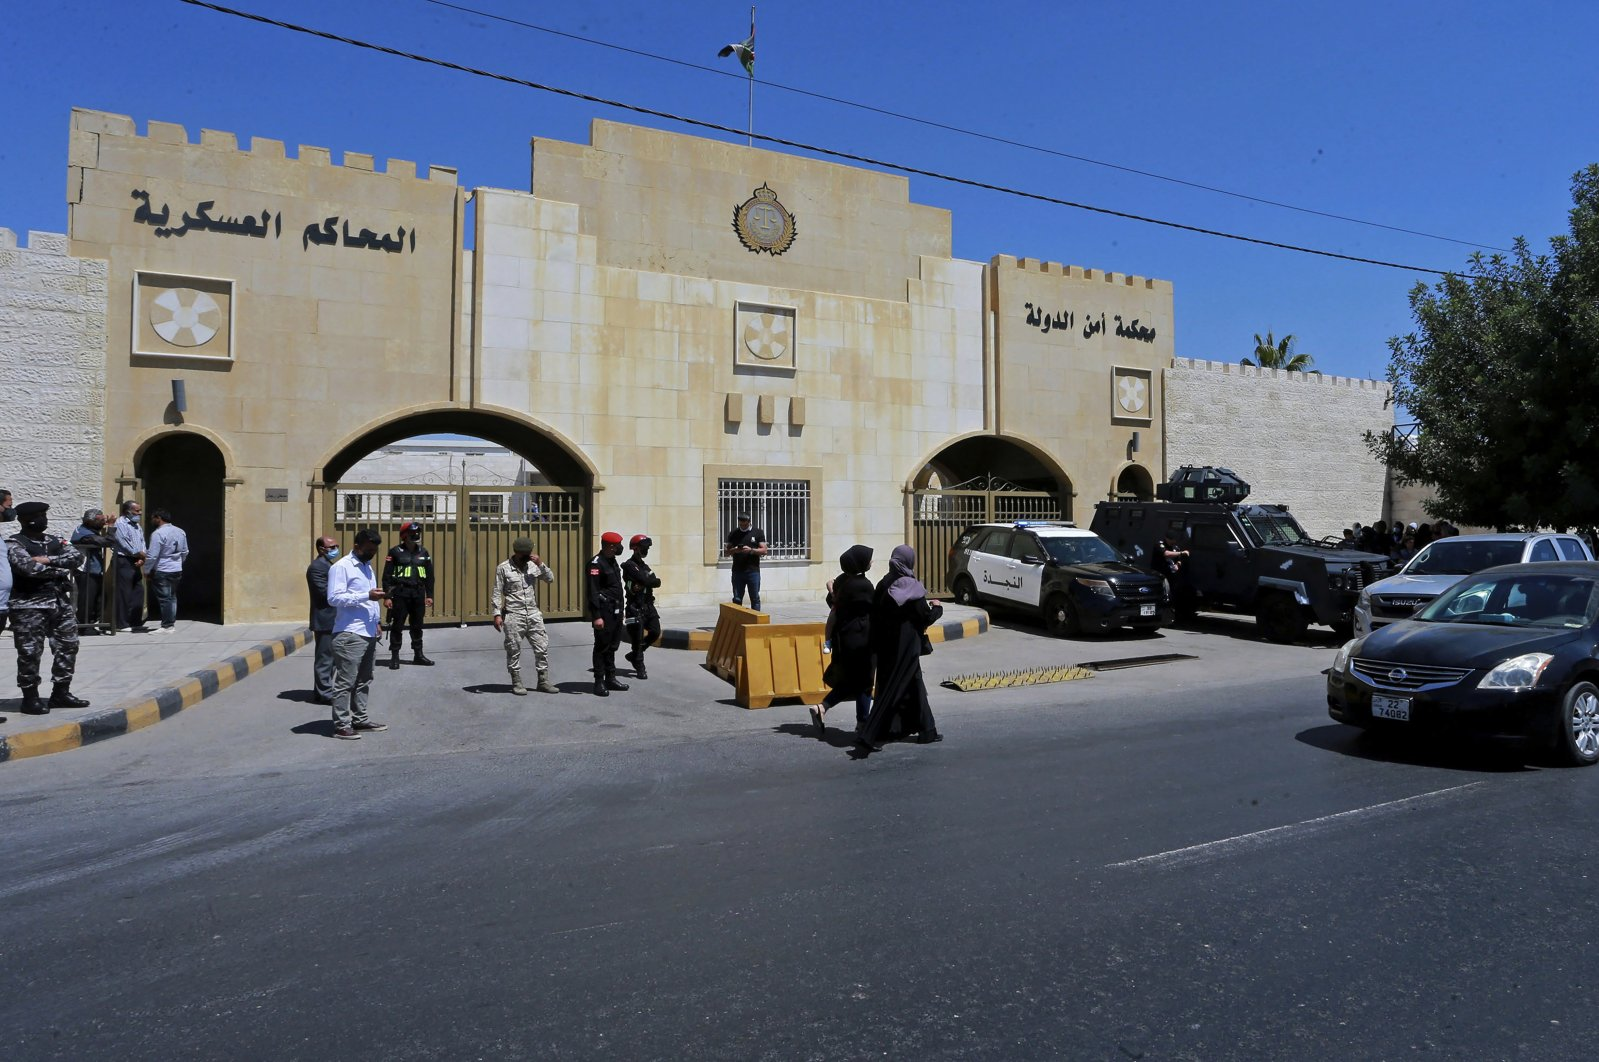 Security forces stand outside the state security court where the trial of Bassem Awadallah, a former royal adviser, and Sharif Hassan bin Zaid, a distant cousin of the king, is taking place, in Amman, Jordan, June 21, 2021. (AP Photo)